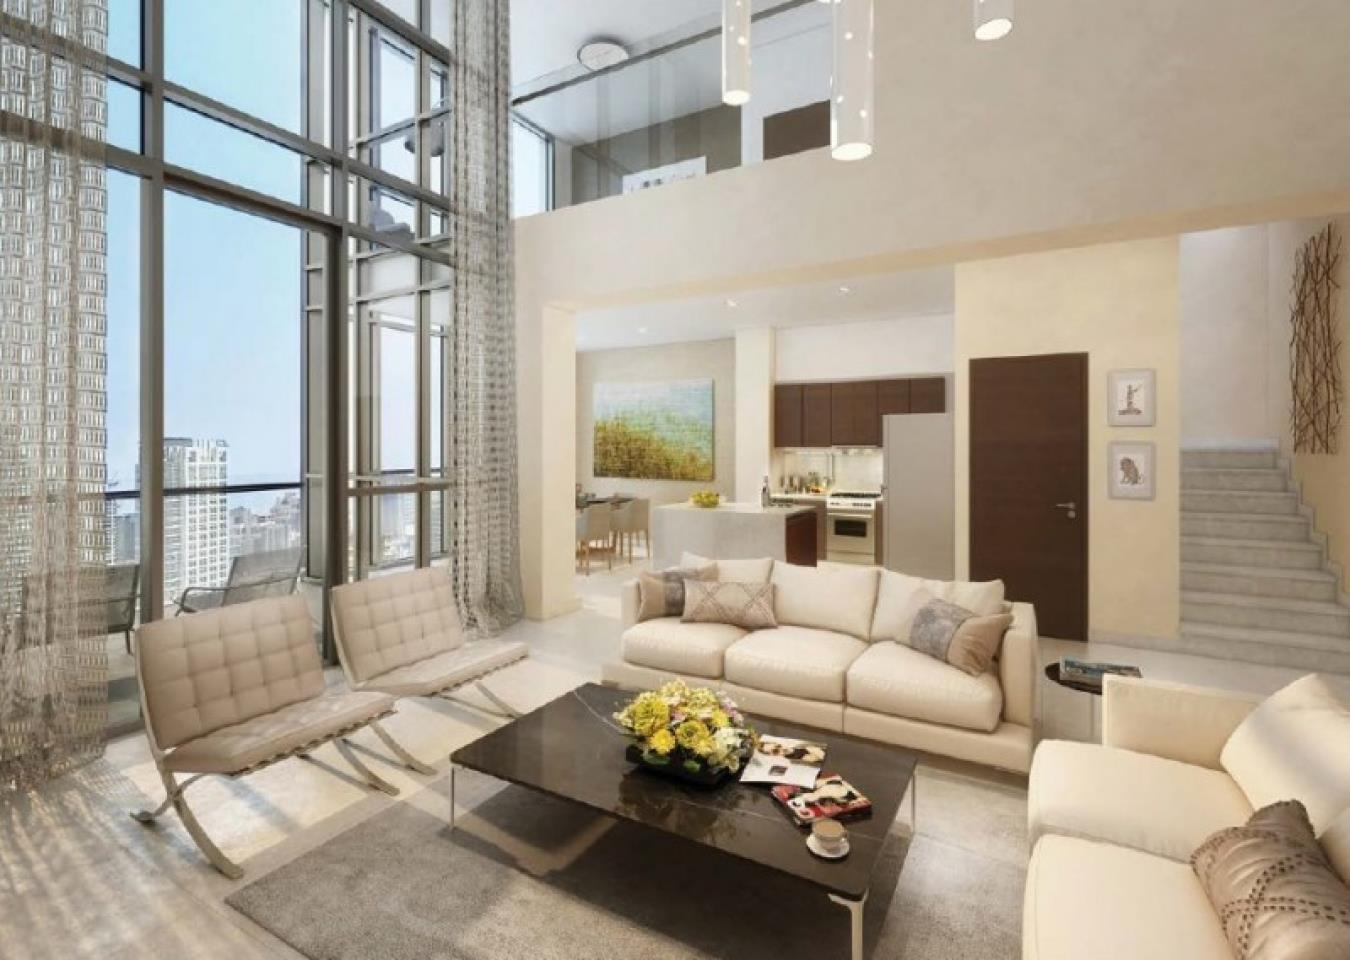 Sophisticated 2 BR Apt in Bellevue Tower Downtown